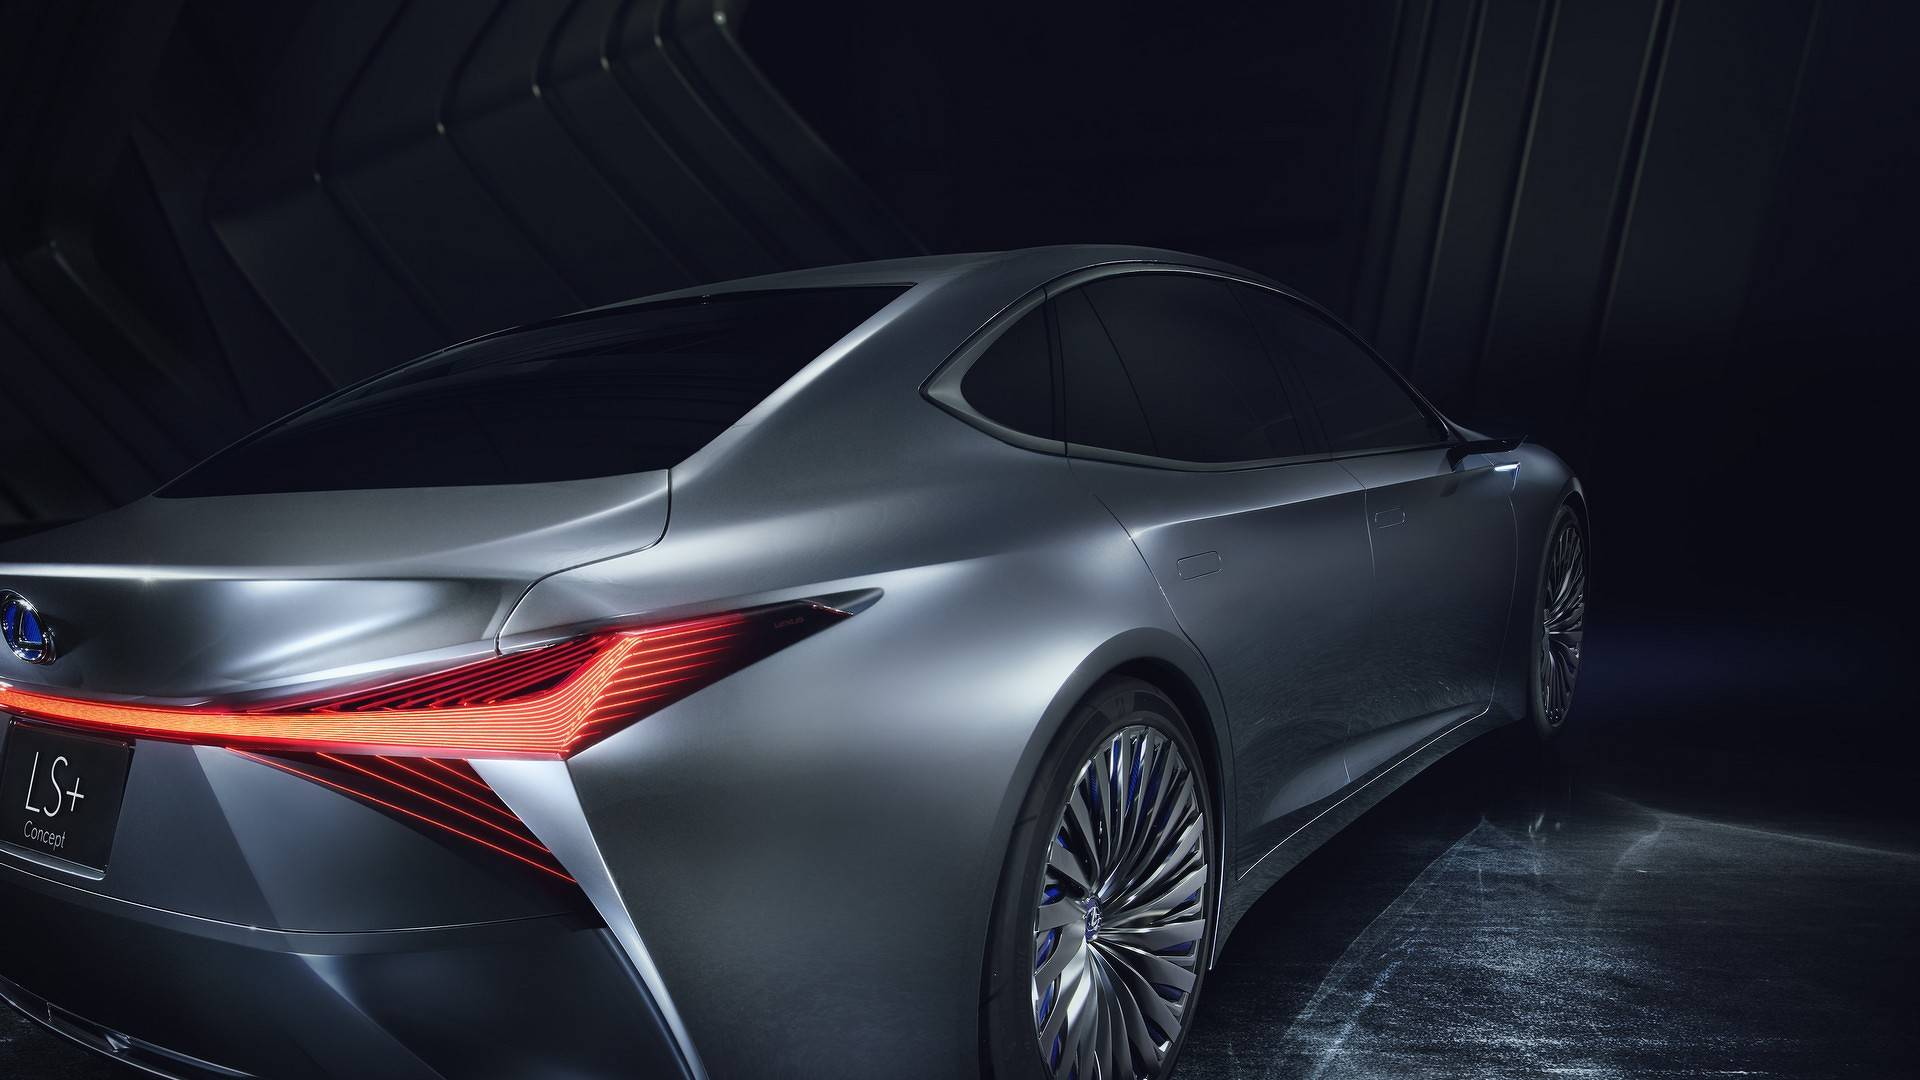 lexus-ls-concept-isnt-the-twin-turbo-v8-powered-ls-f-we-were-expecting_6 Amazing toyota Camry 2008 Cabin Air Filter Cars Trend